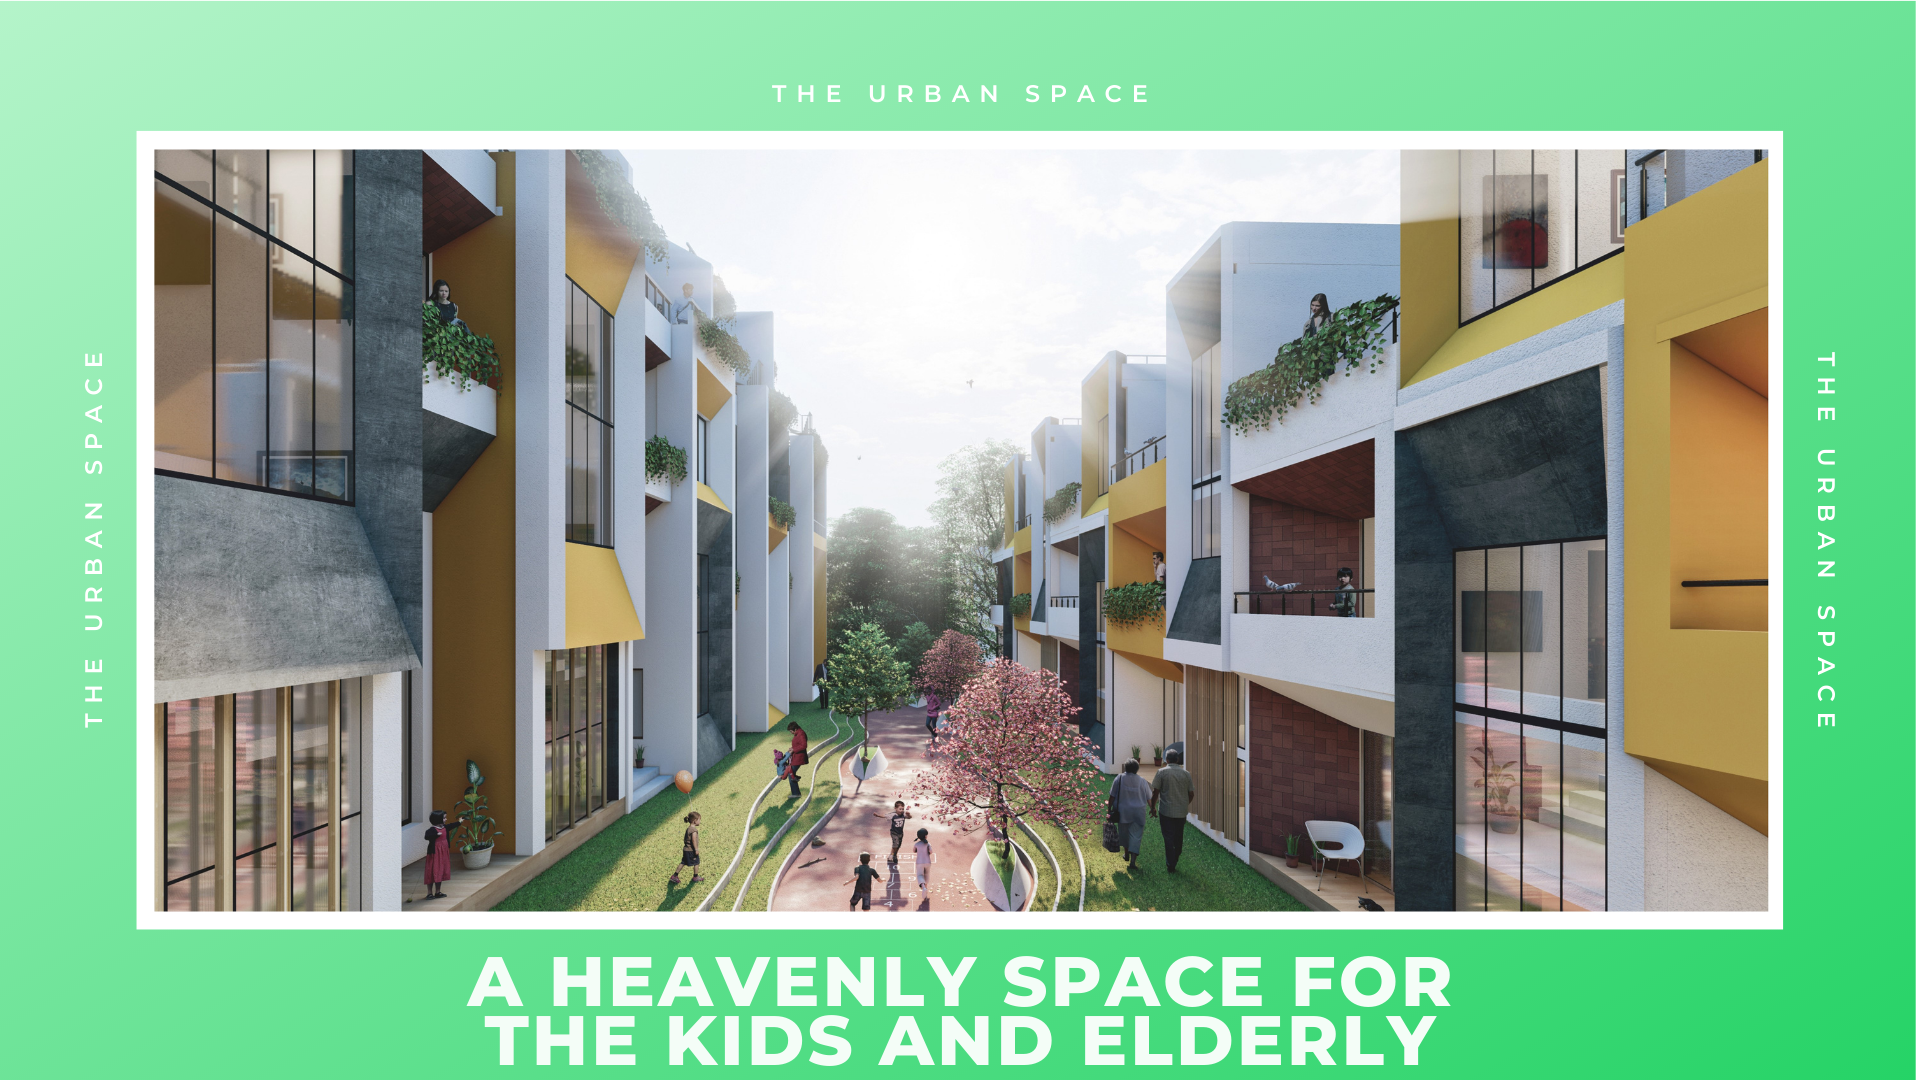 A Heavenly Space for The Families With Kids - The Urban Space